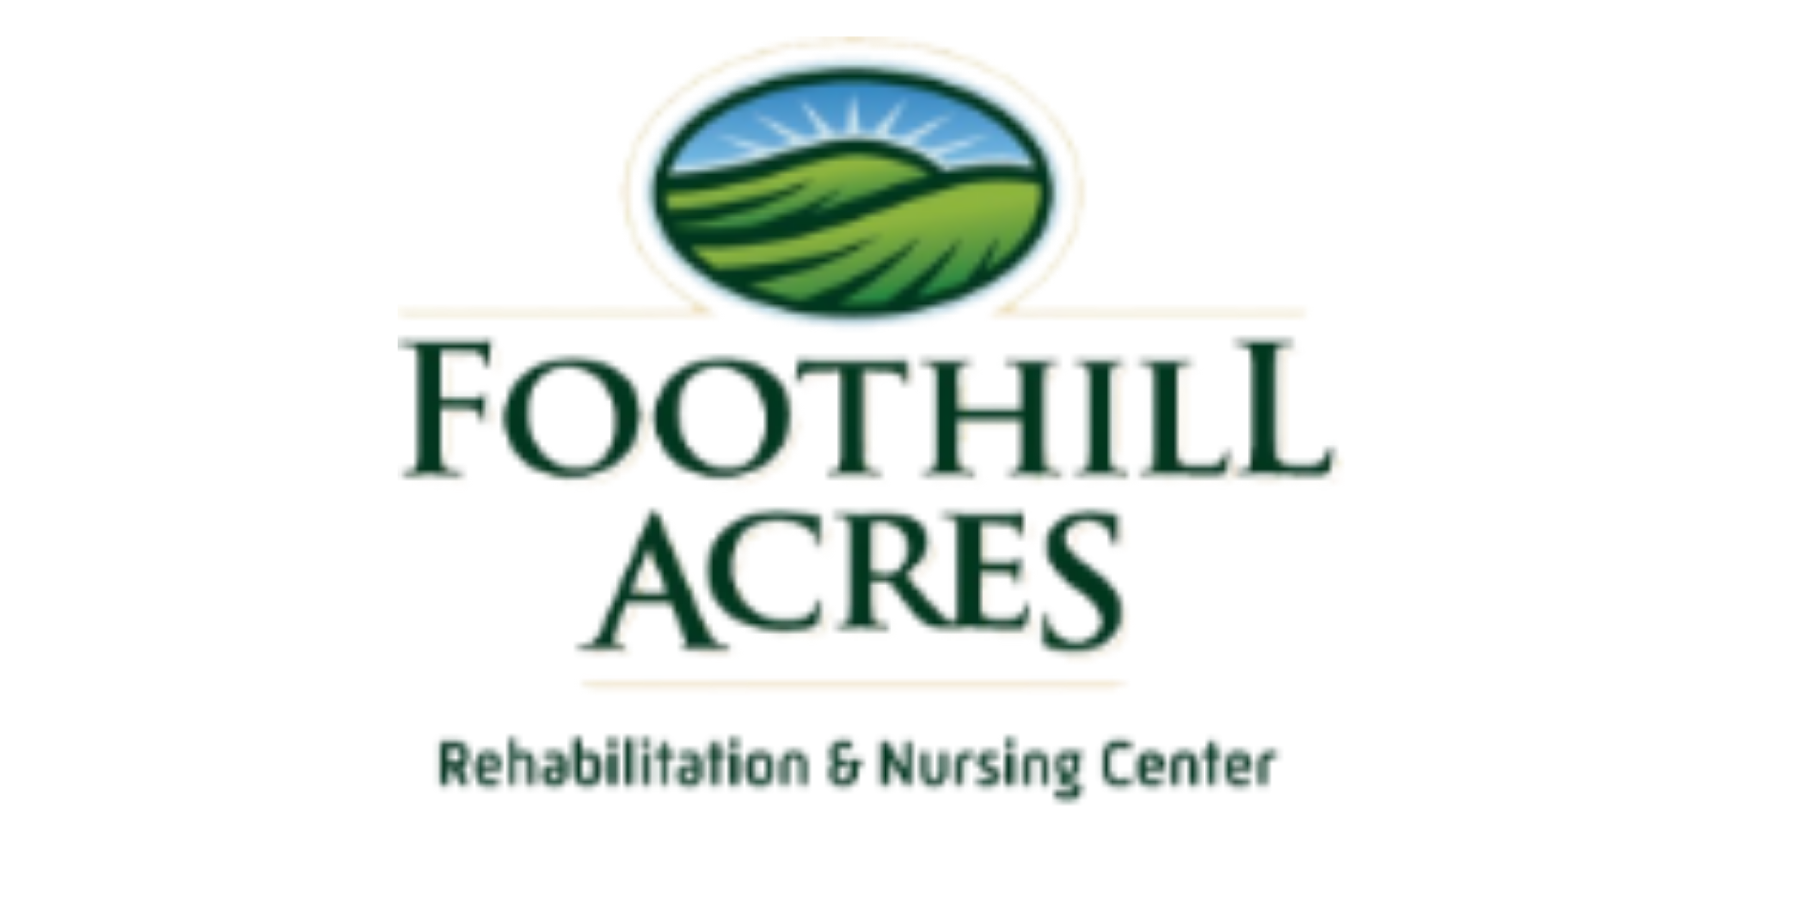 Foothills Acres